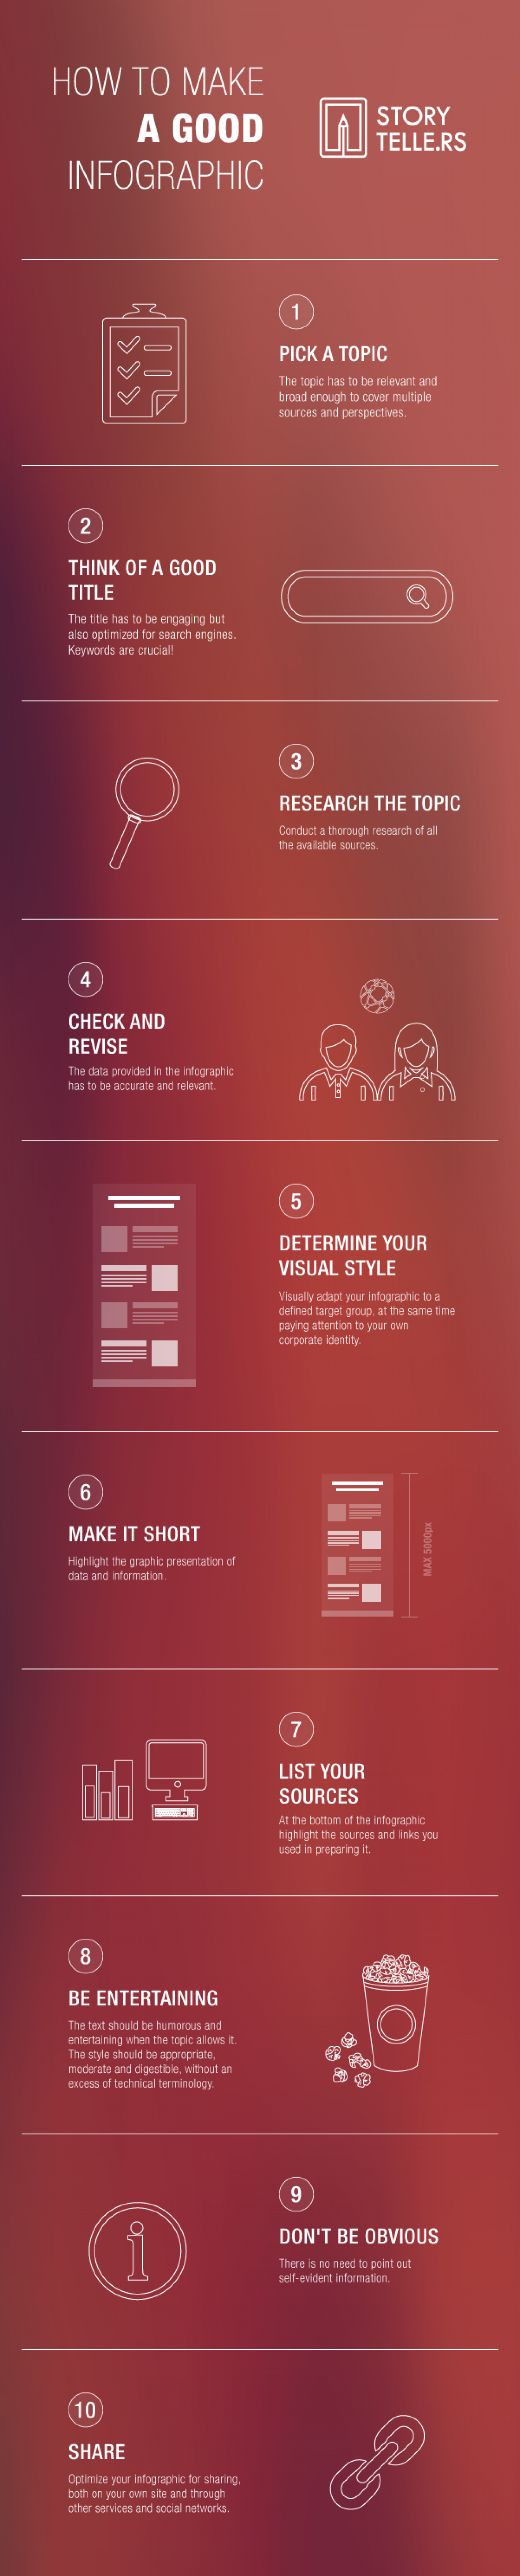 How to Make a Good Infographic Infographic